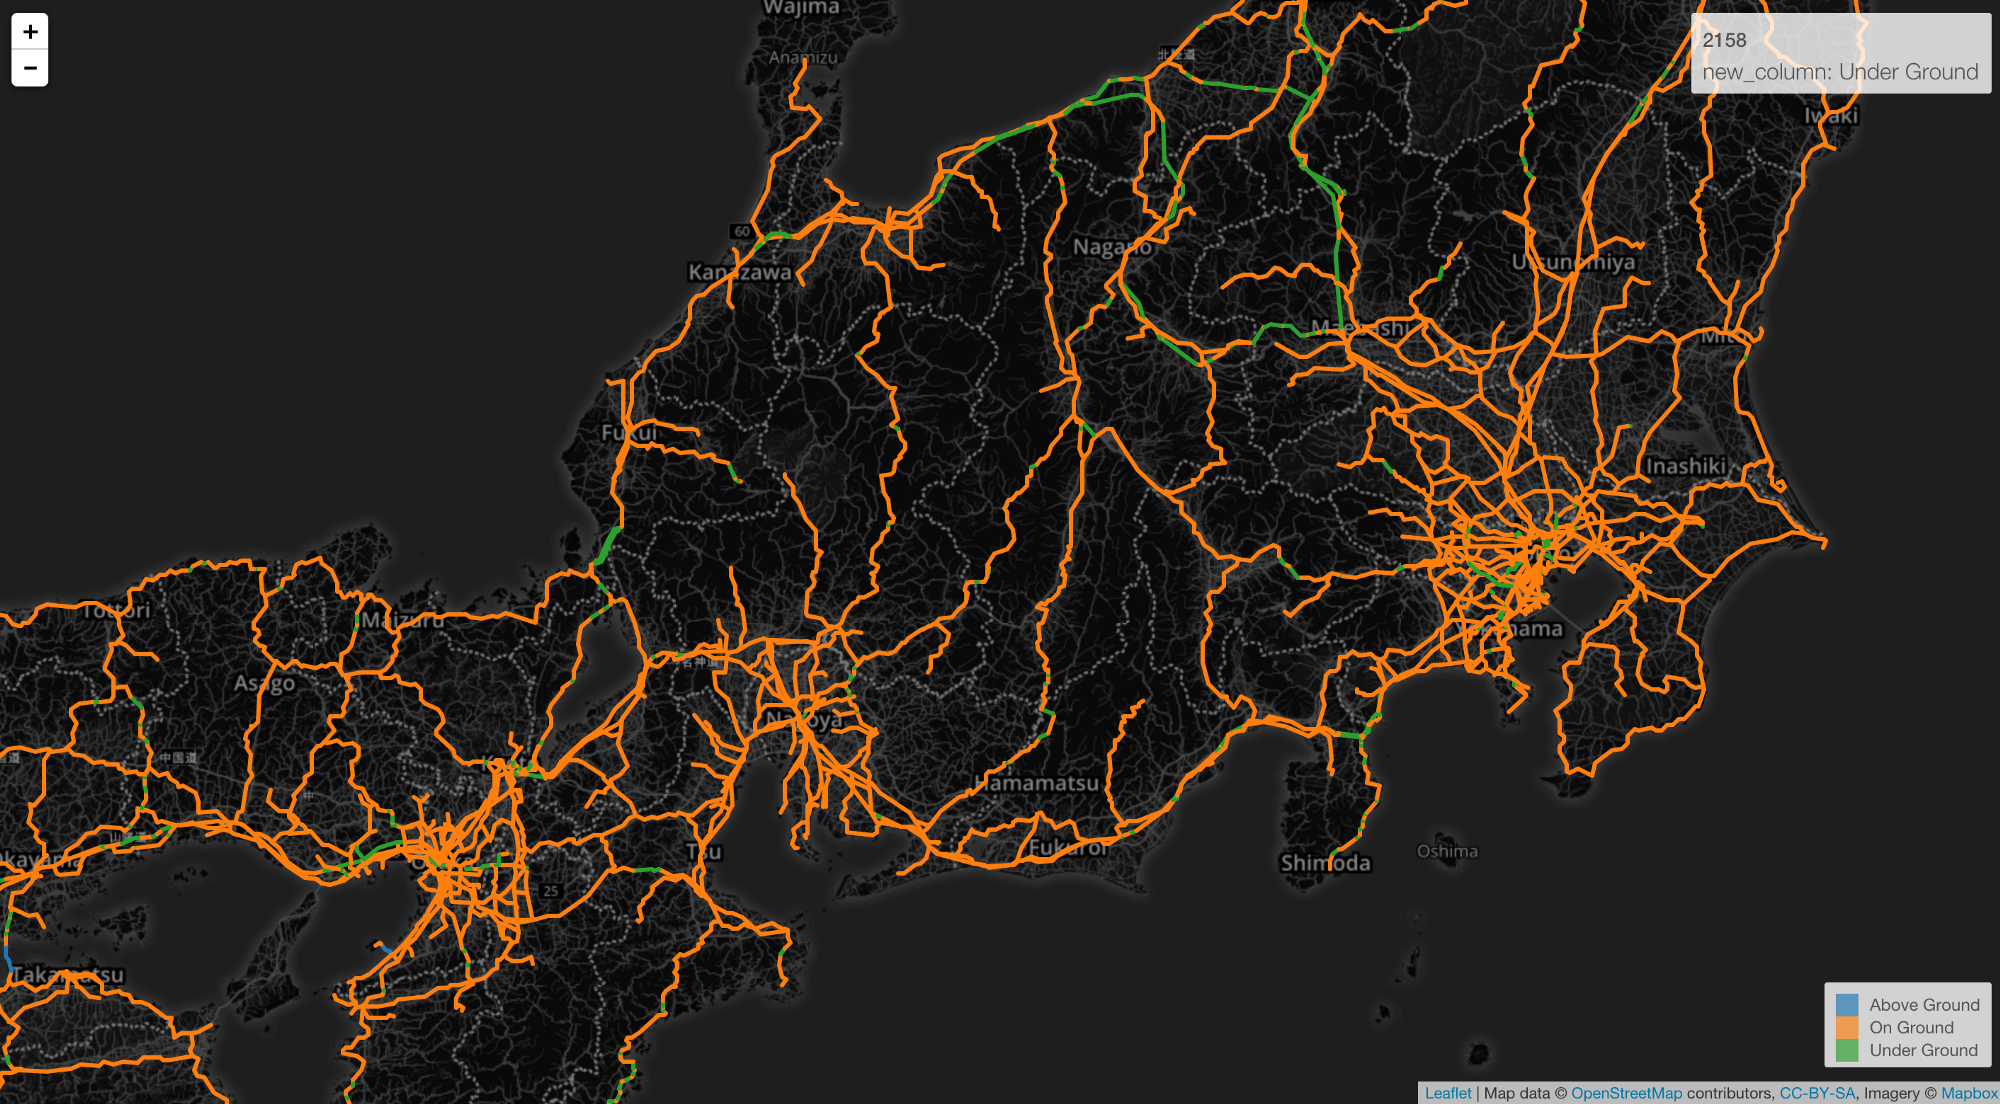 Visualizing geospatial data with your own geojson learn data science railroads in japan gumiabroncs Images